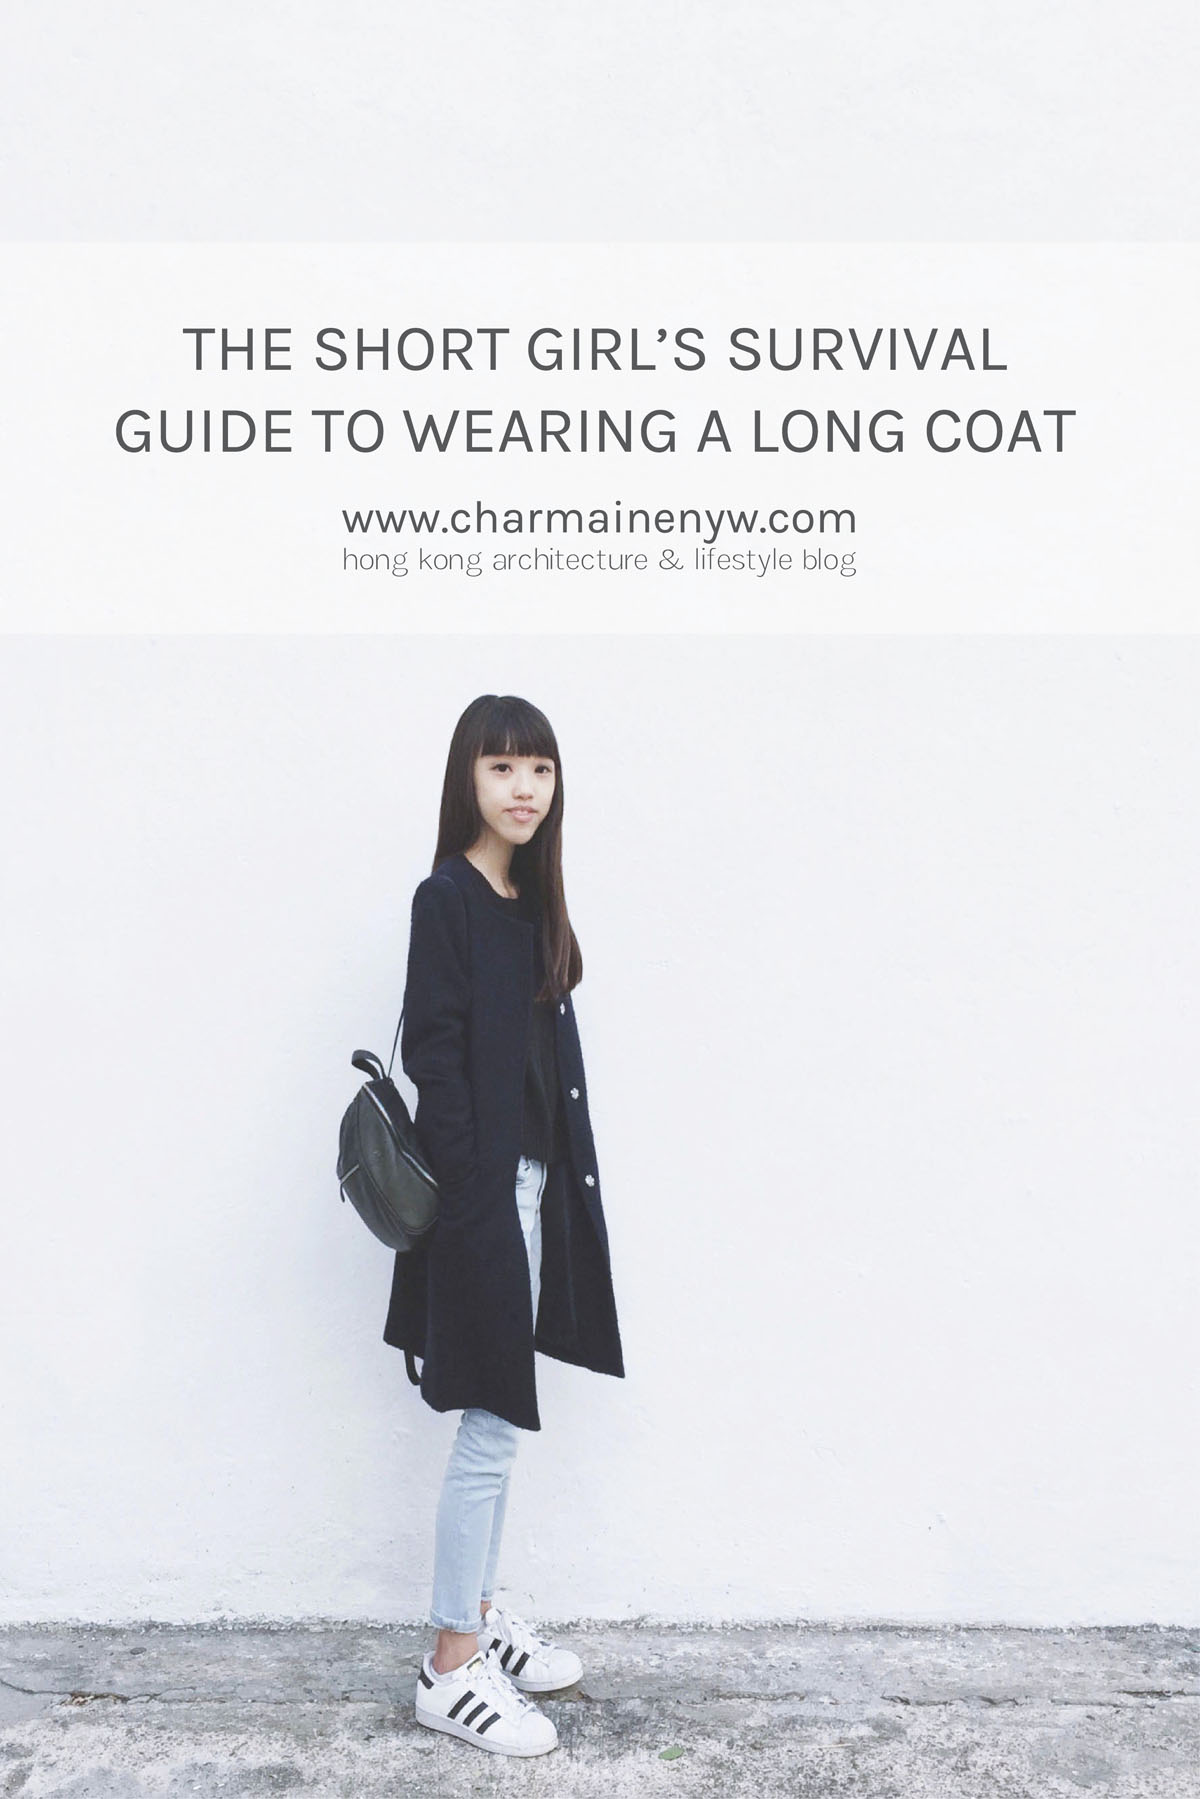 The short girl's survival guide to wearing a long coat